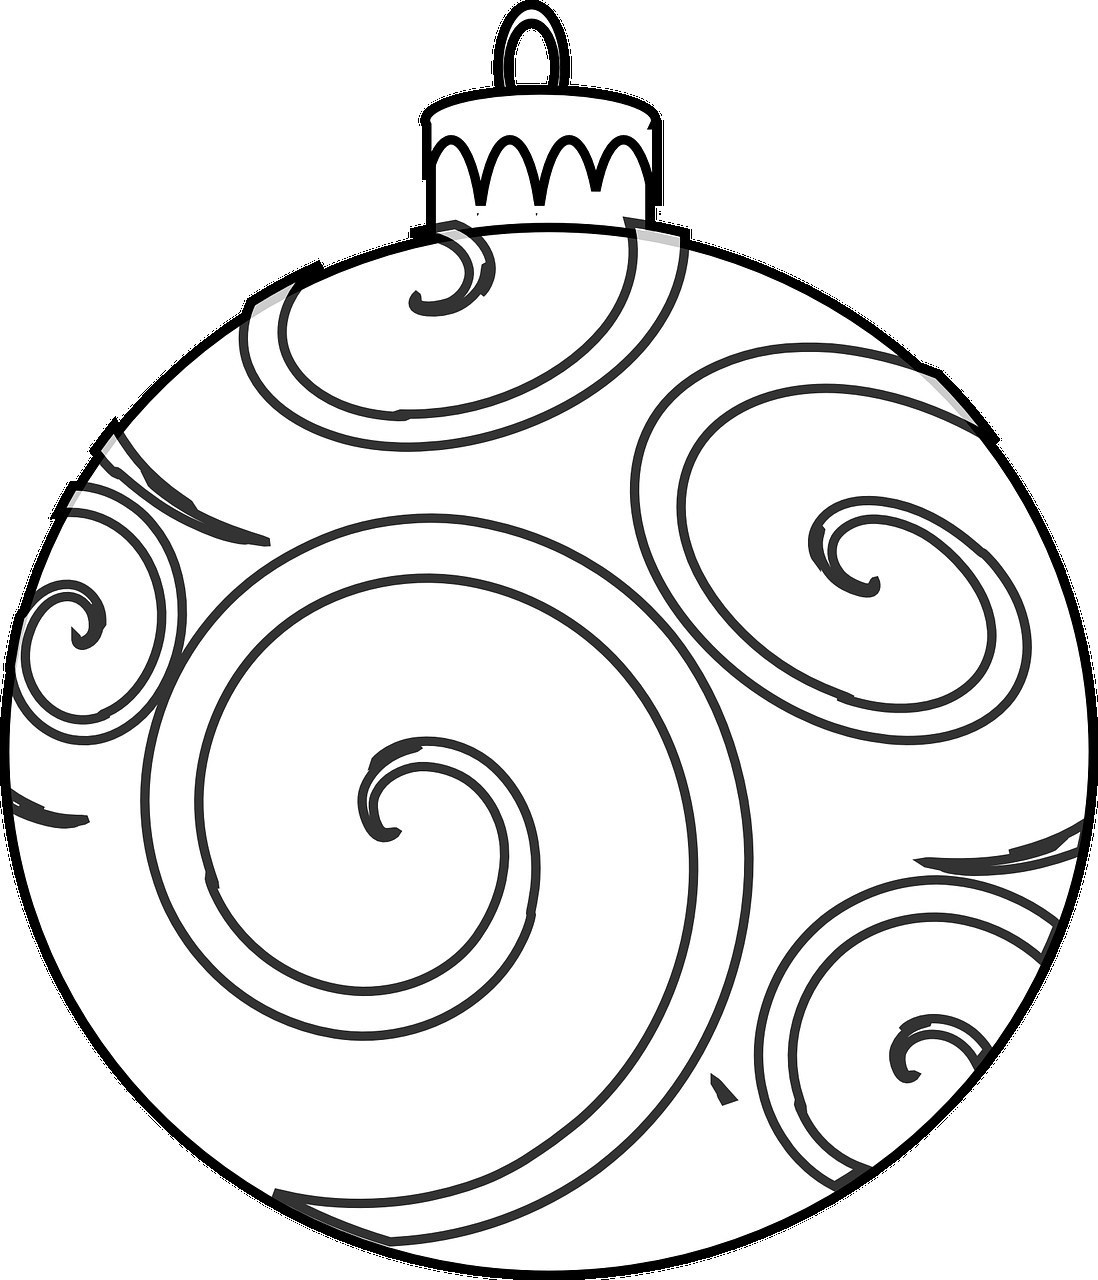 Christmas Coloring Pages Ornaments With Decorations Printable Page For Kids